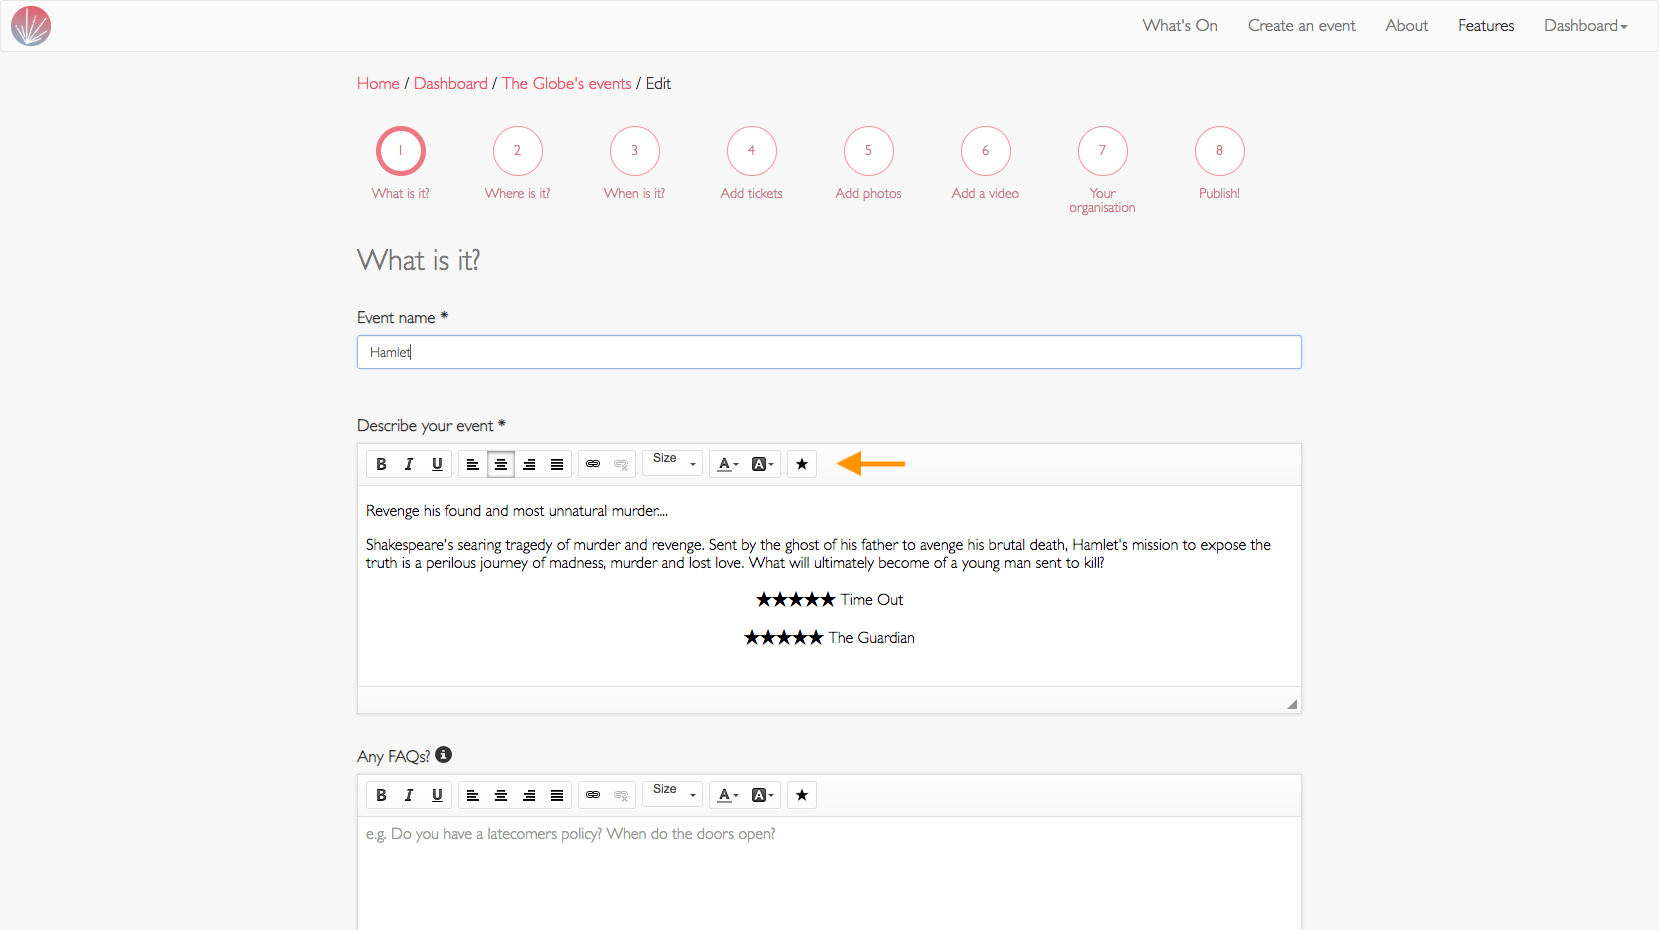 screenshot of adding a review star to an event description